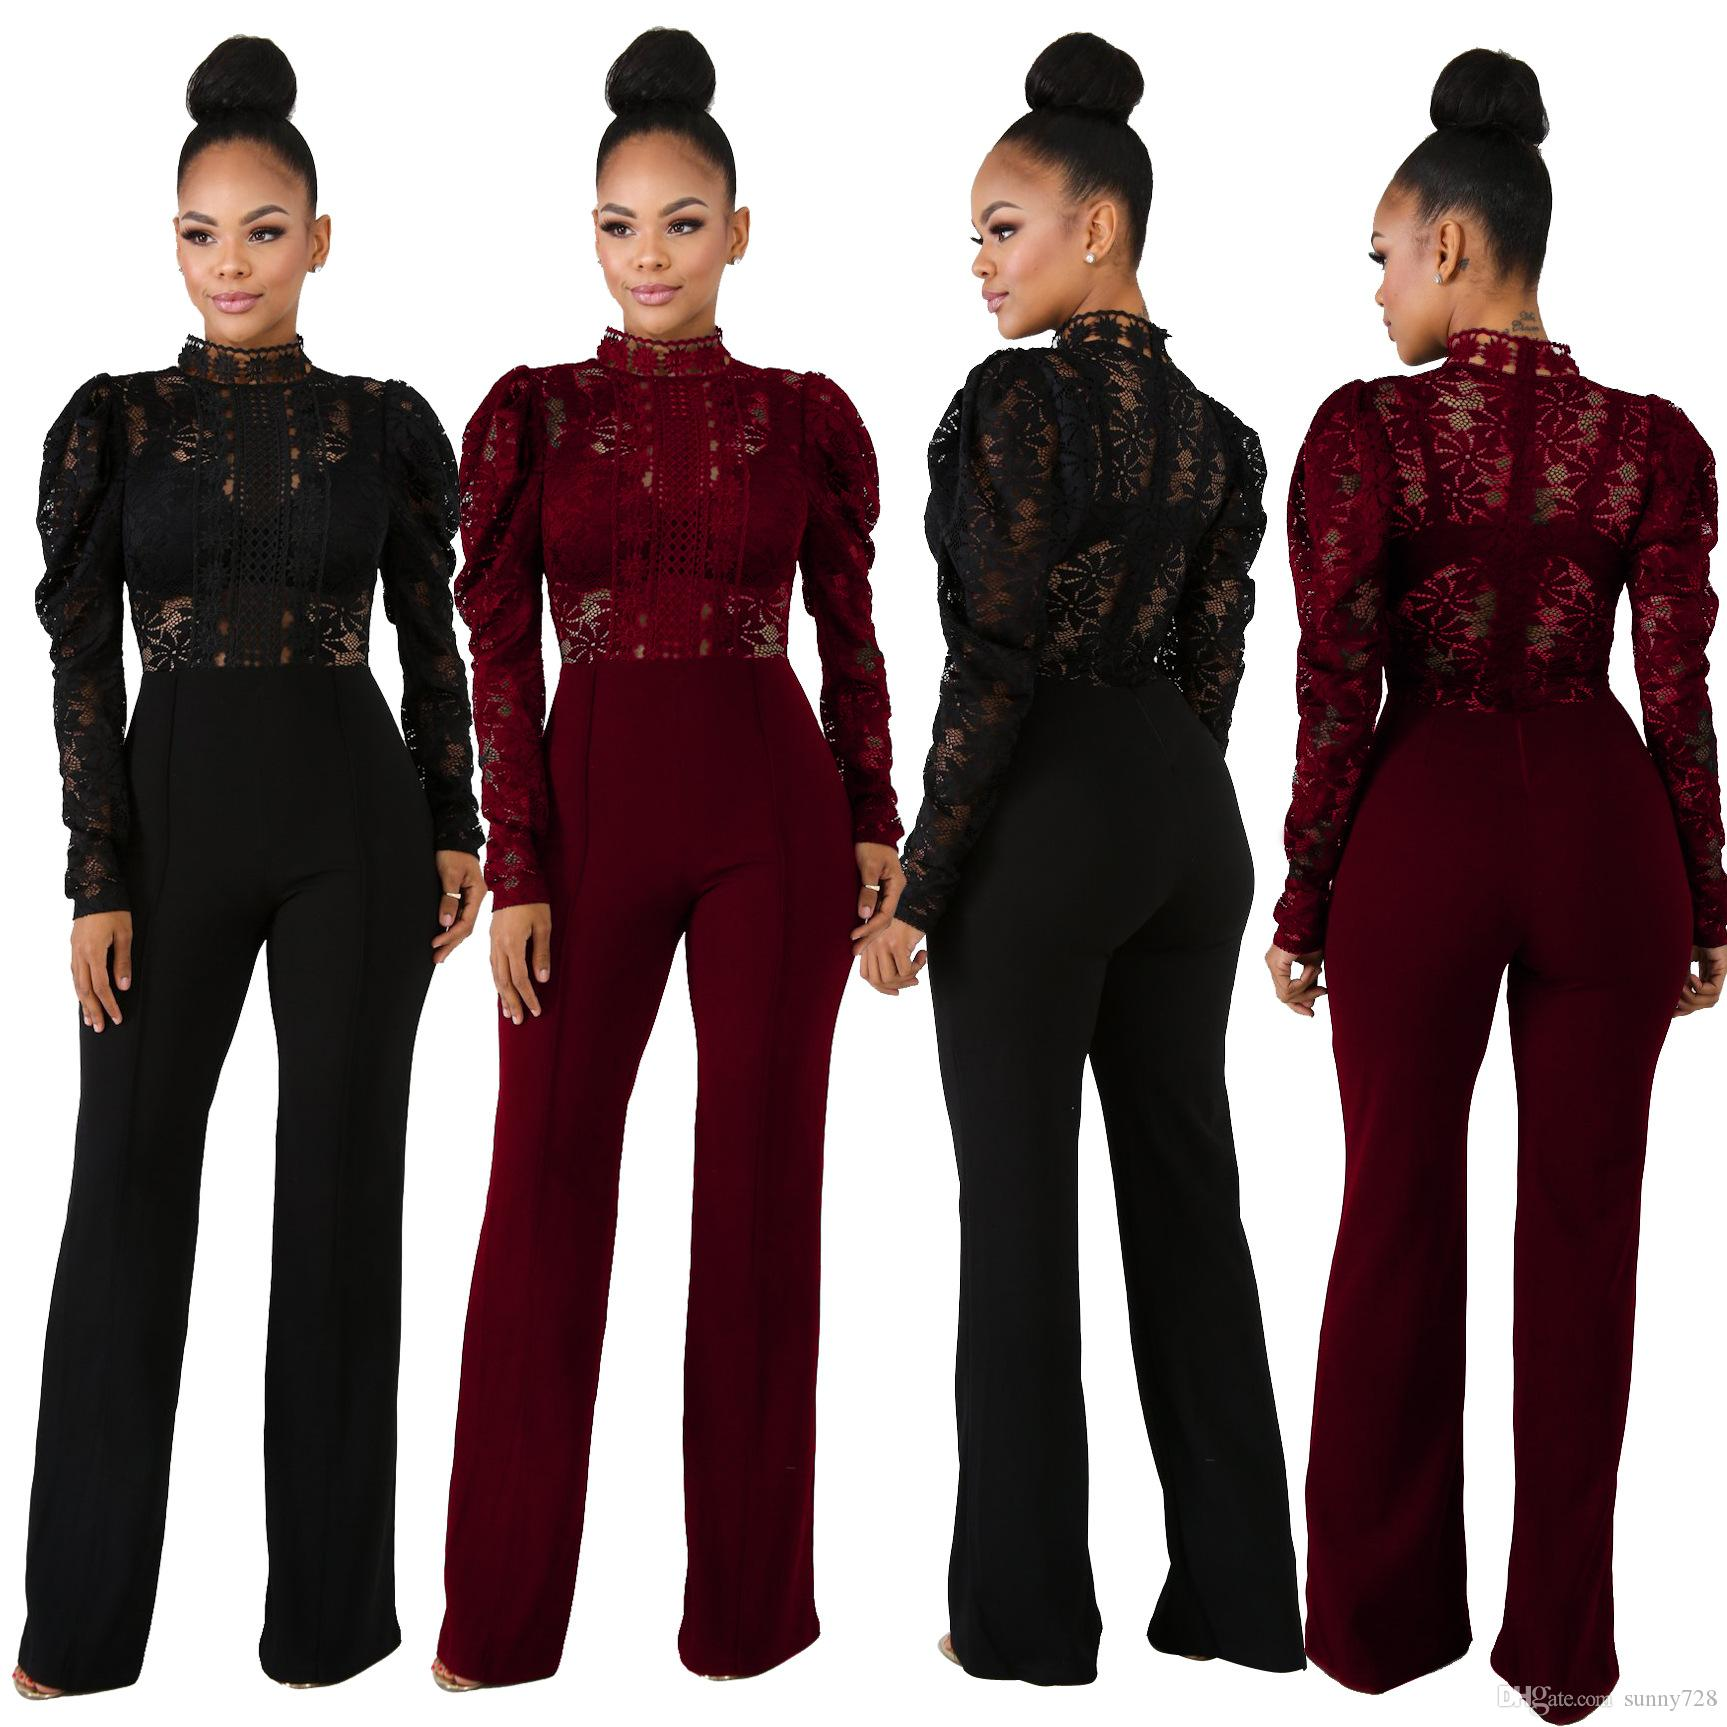 93036a6268b See Through Lace Black Burgundy Fashion Women Jumpsuits 2019 High Neck Long  Sleeves Straight Long Pants Suits Party Outfits High Quality Lace Jumpsuits  Long ...